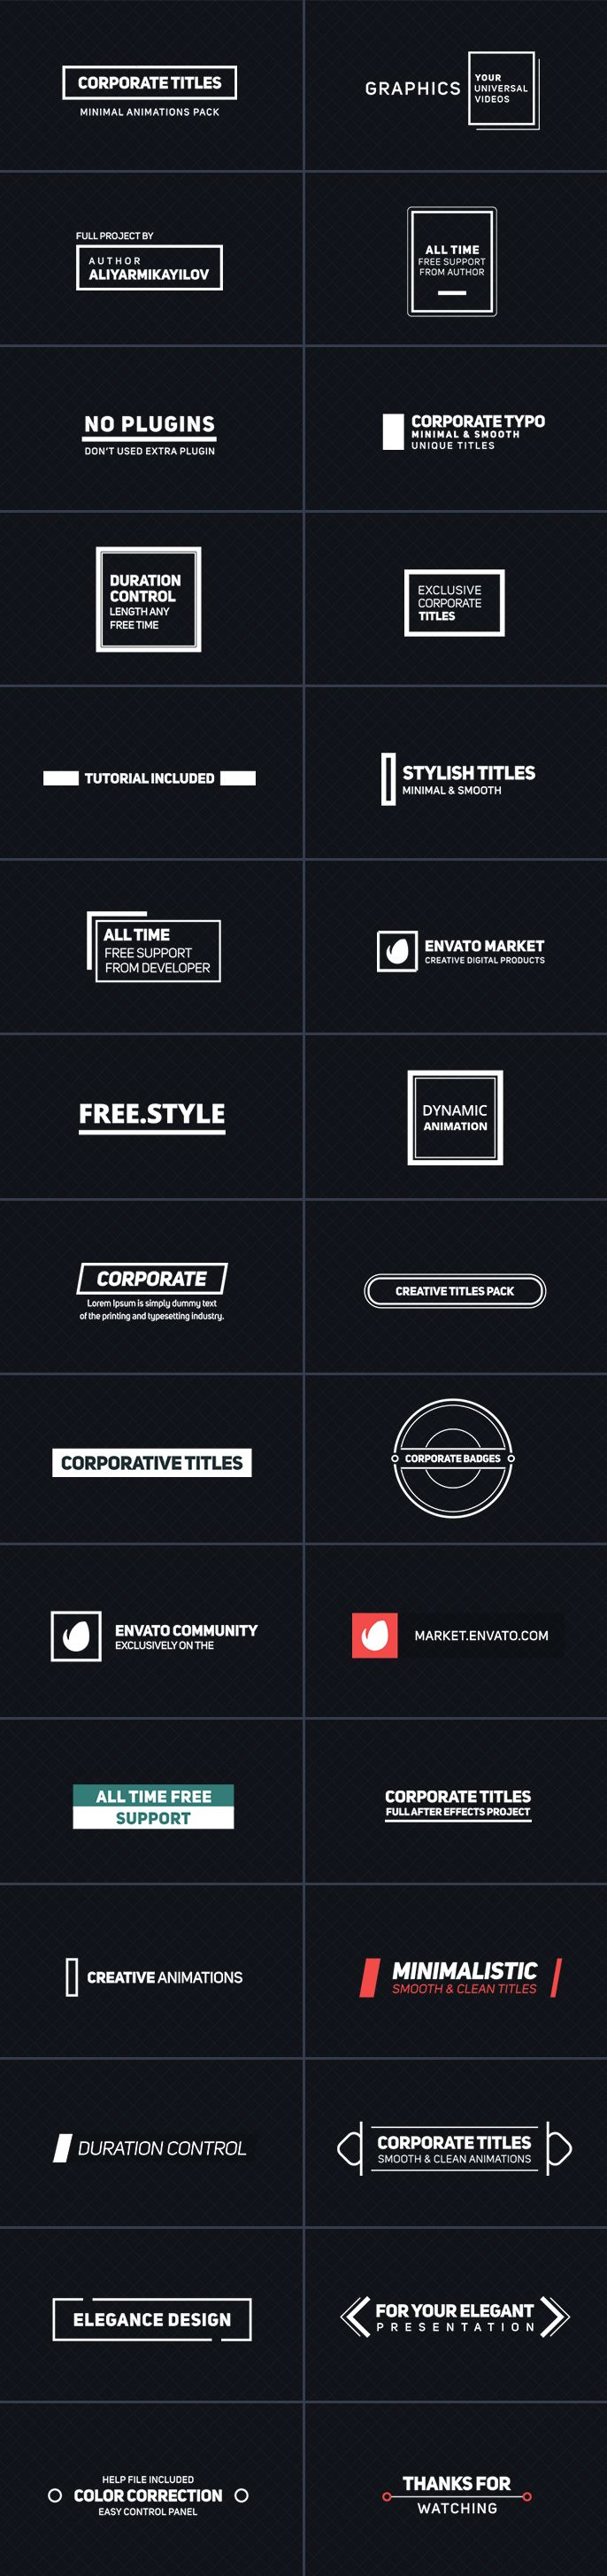 Corporate Titles - After Effects Project Files | VideoHive